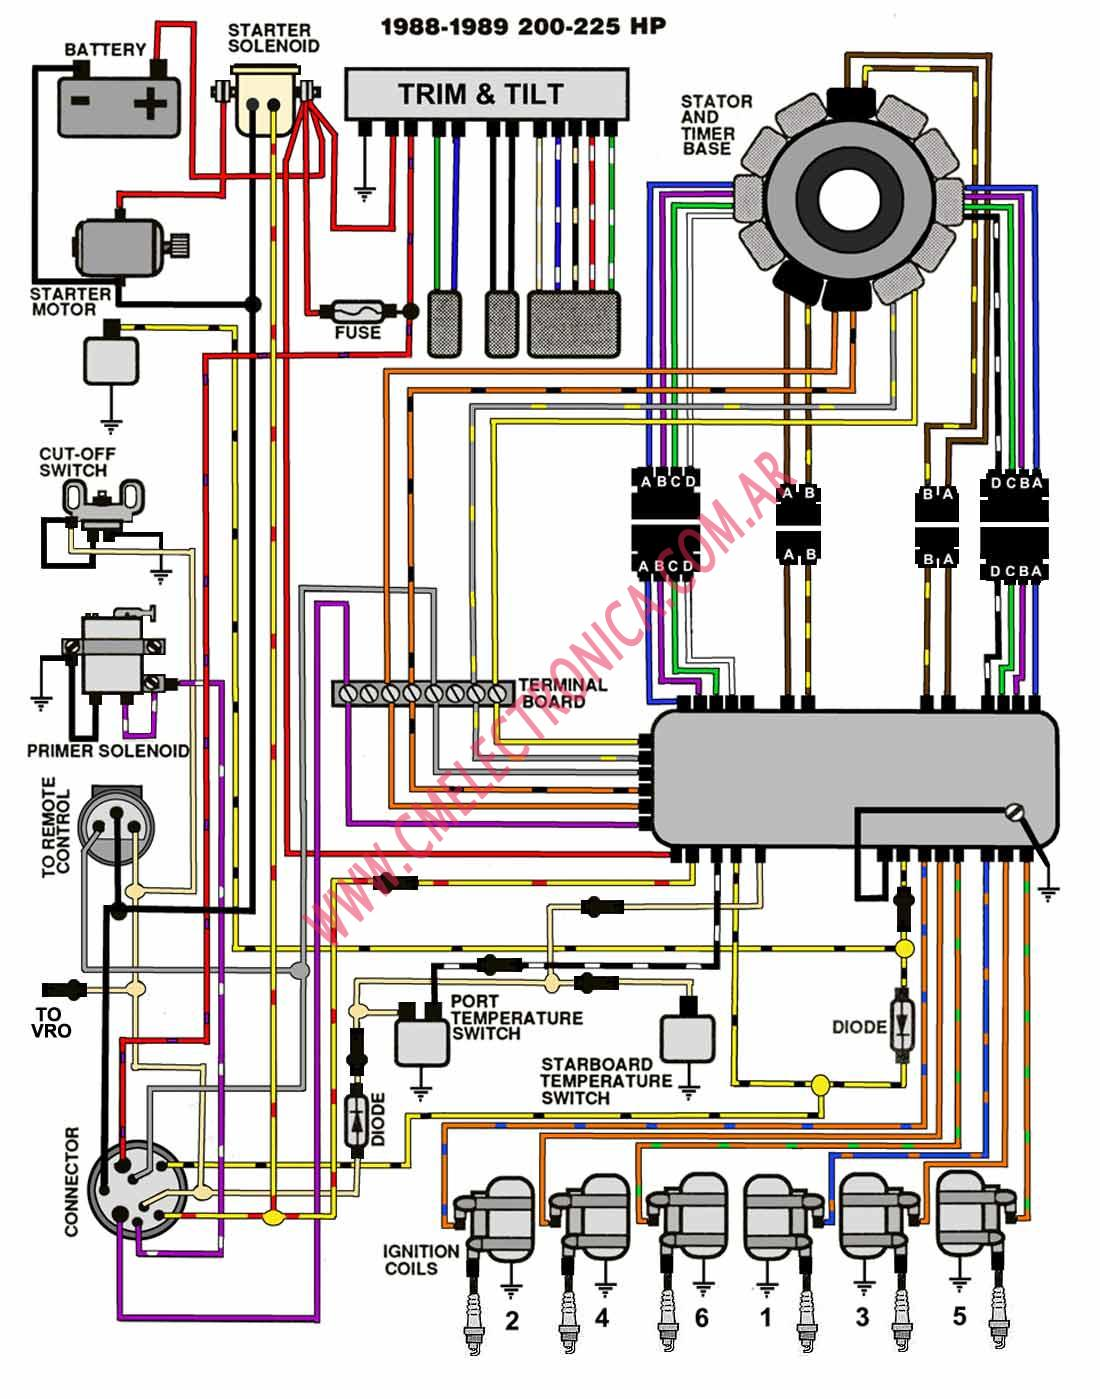 1979 mercury 150 hp outboard wiring diagram meter panel johnson free engine